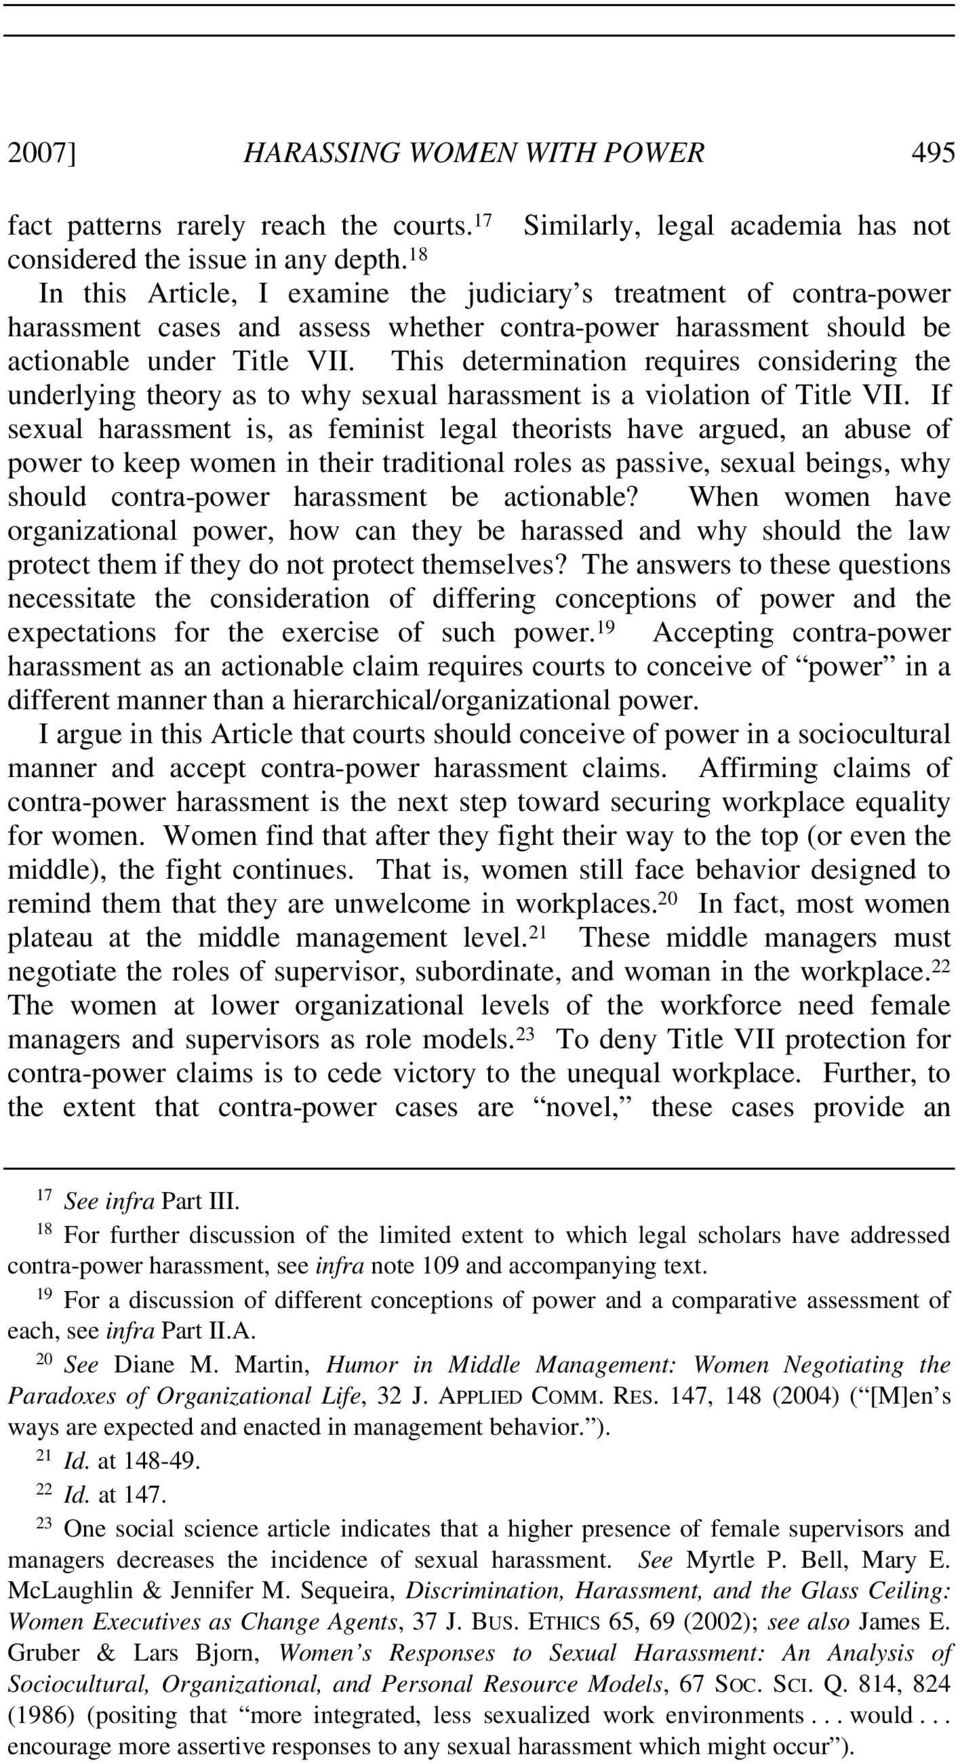 Section 709 c of title vii sexual harassment